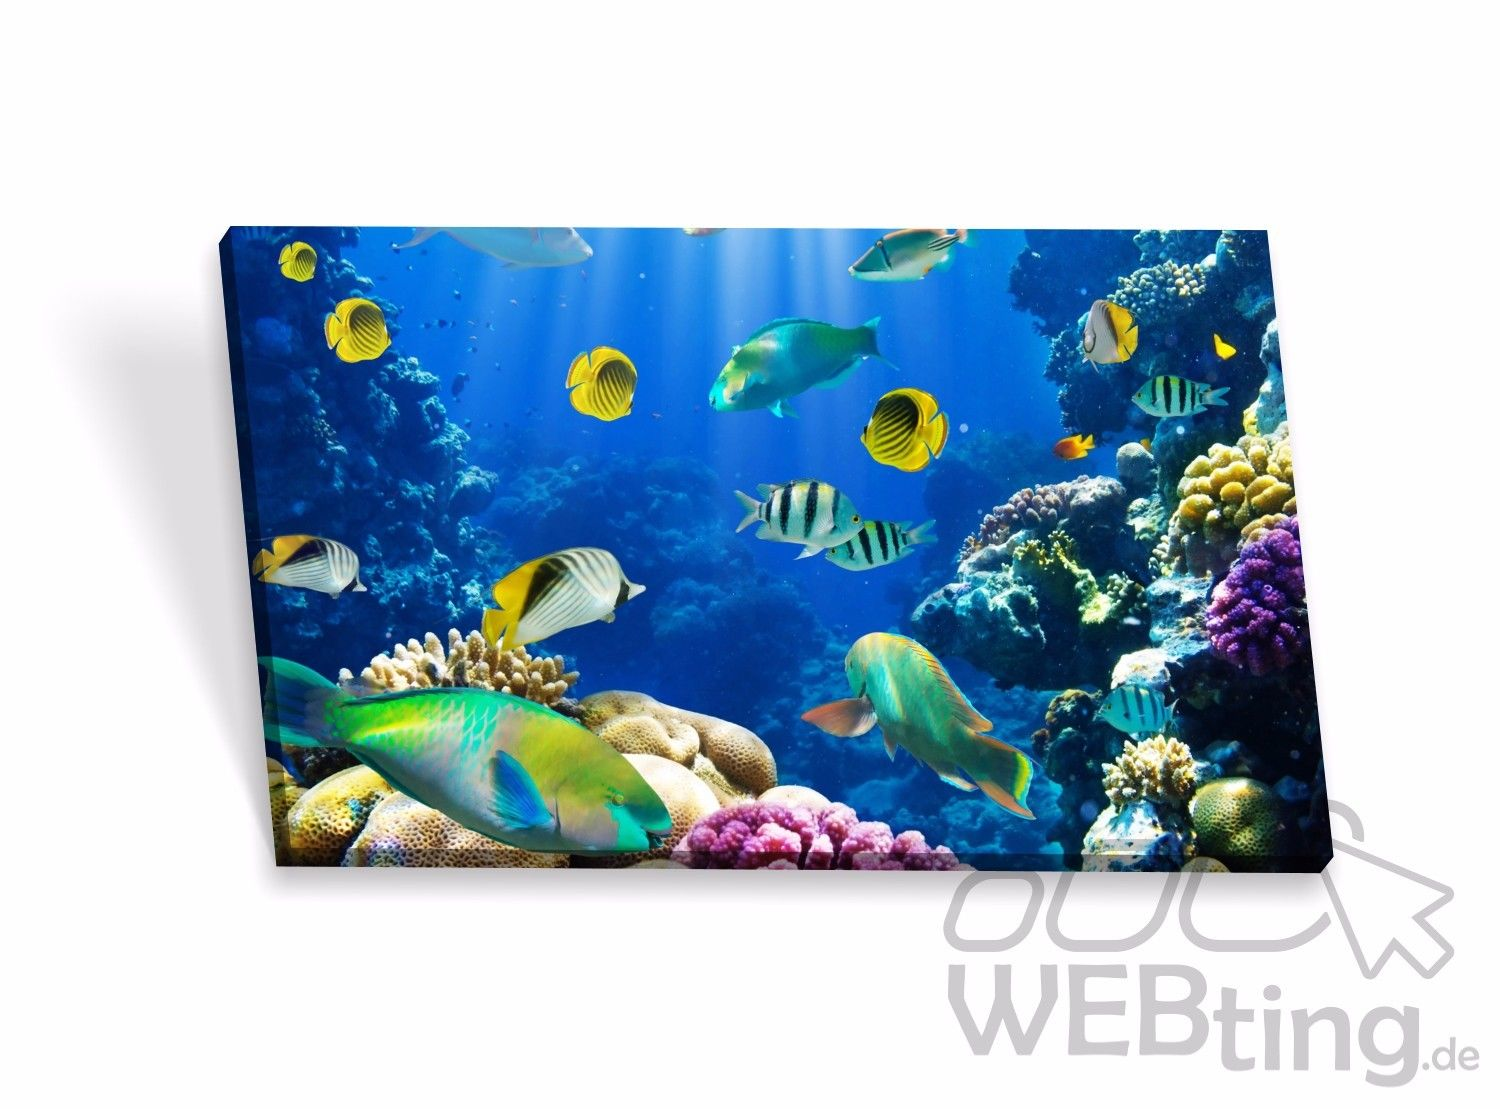 leinwandbilder aquarium keilrahmenbilder keilrahmen bilder poster leinwand bild. Black Bedroom Furniture Sets. Home Design Ideas